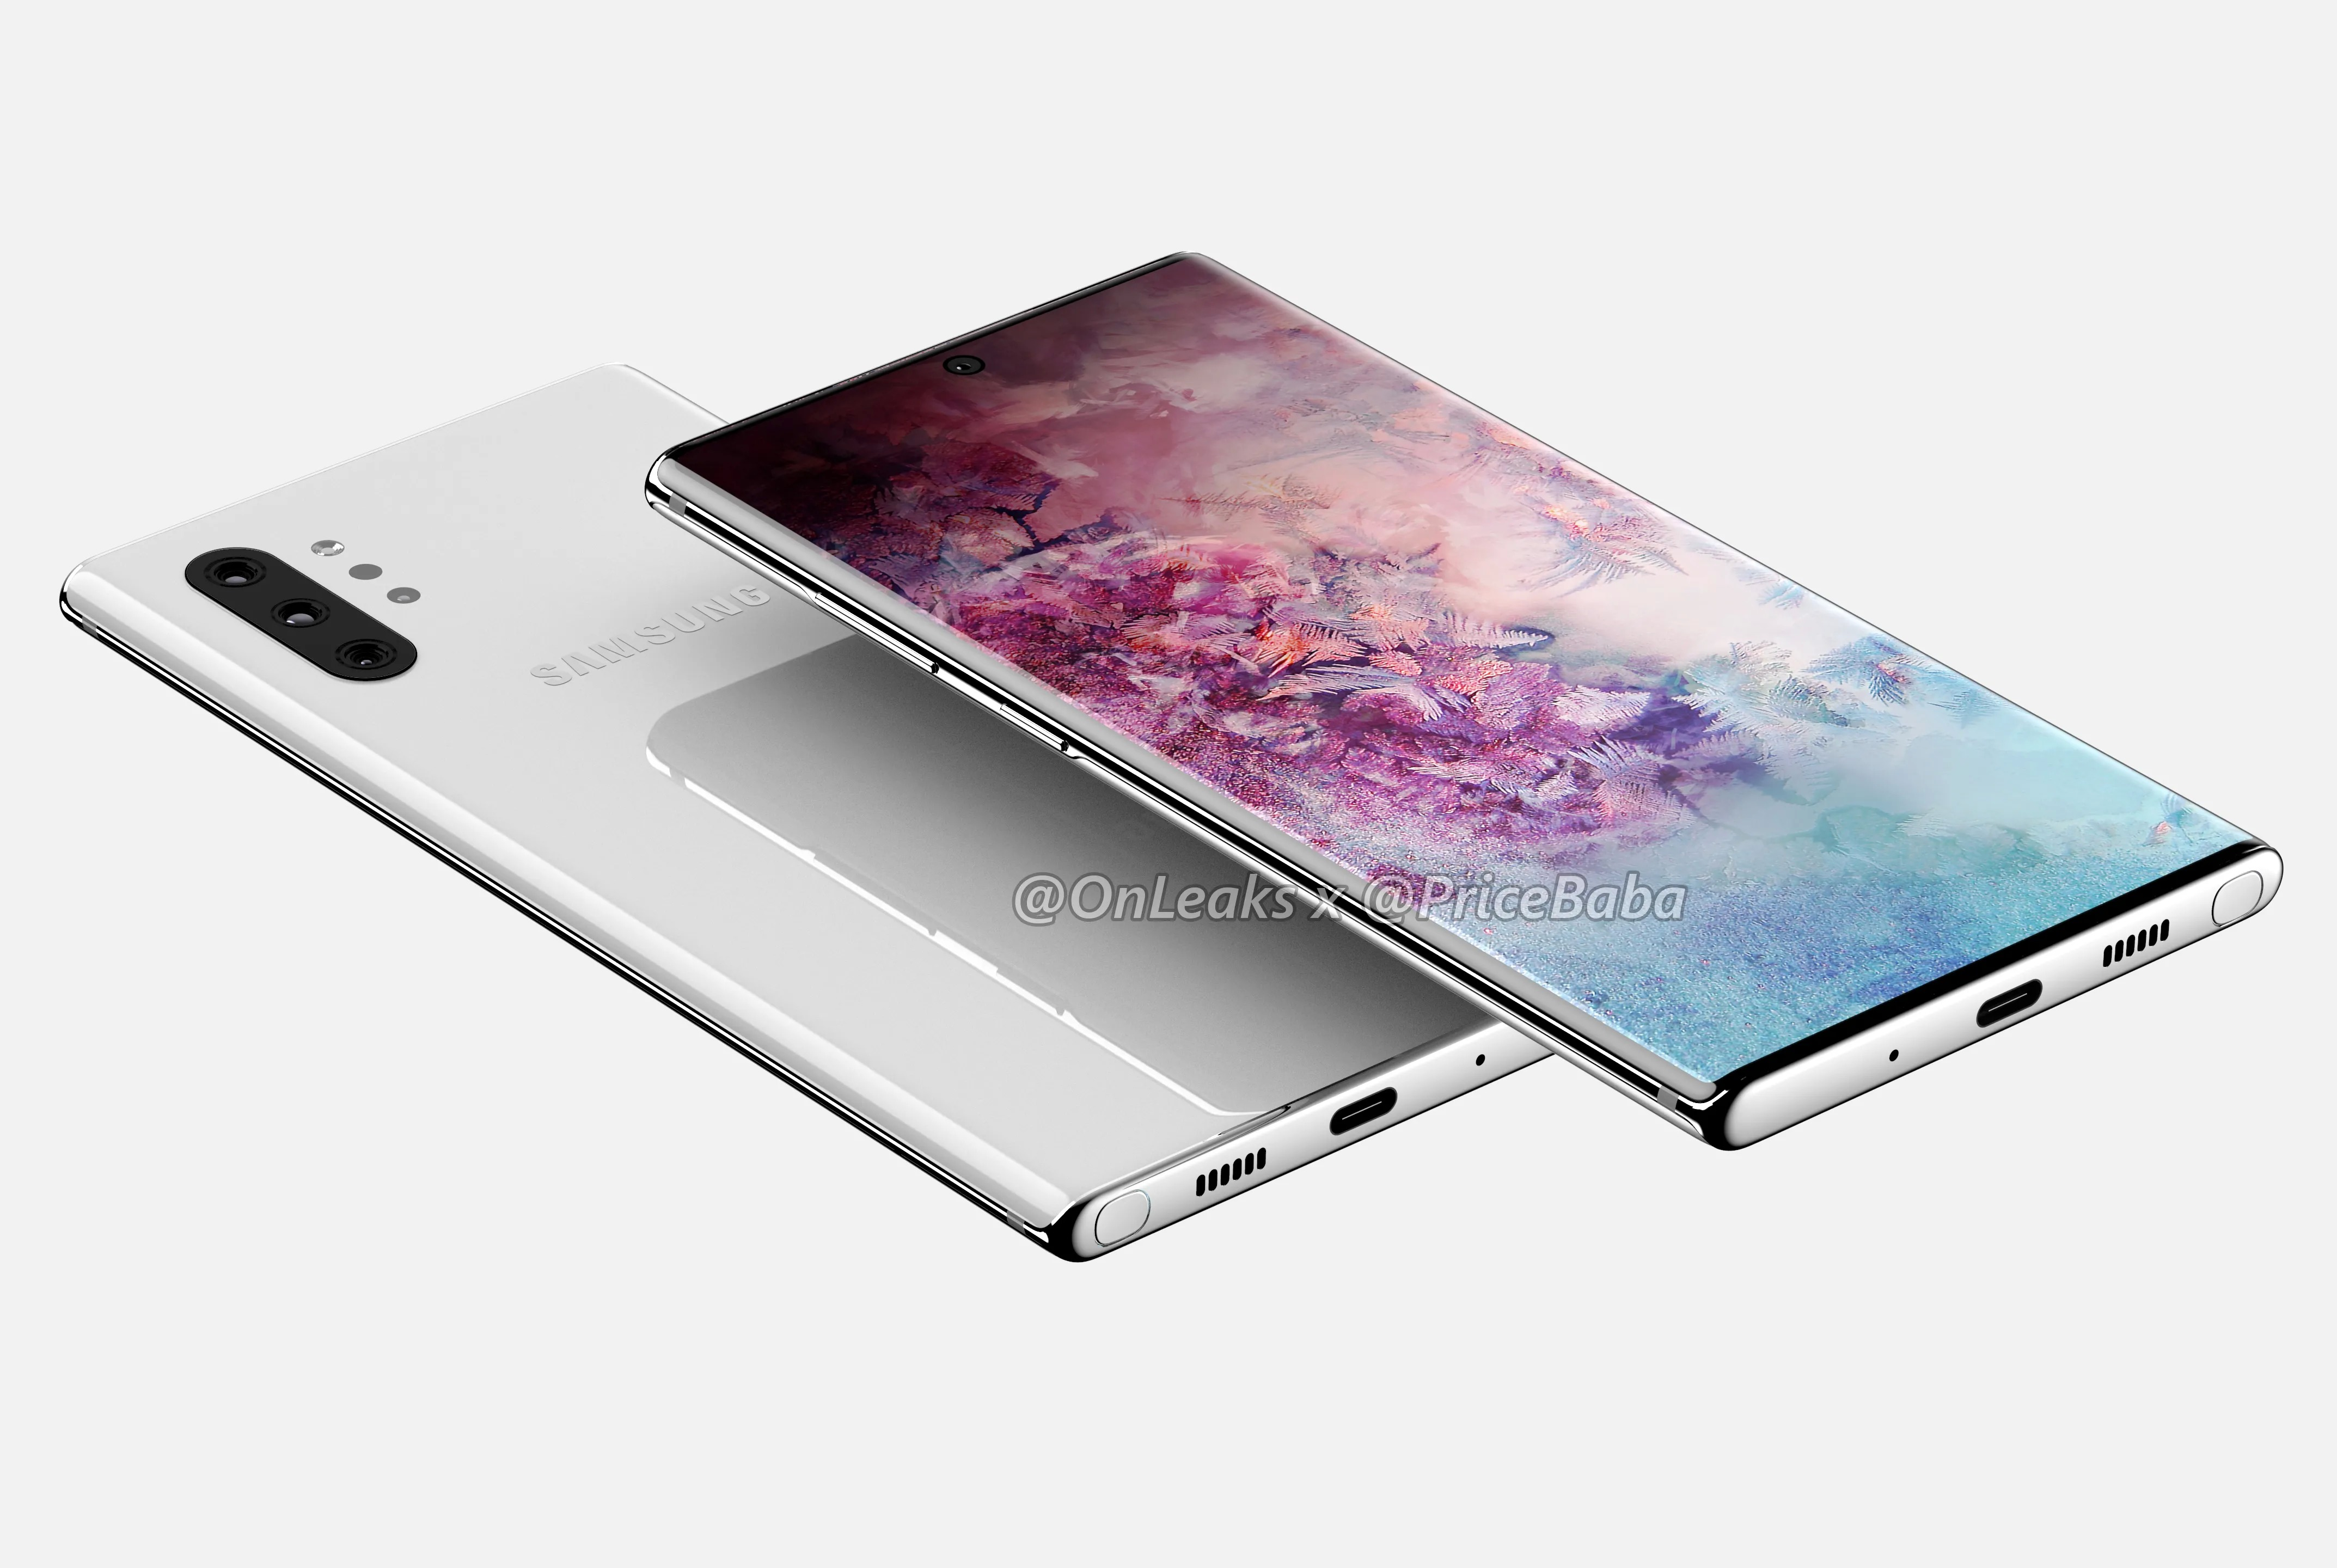 Samsung Galaxy Note10 Pro conflicting rumors: 45W charging is out